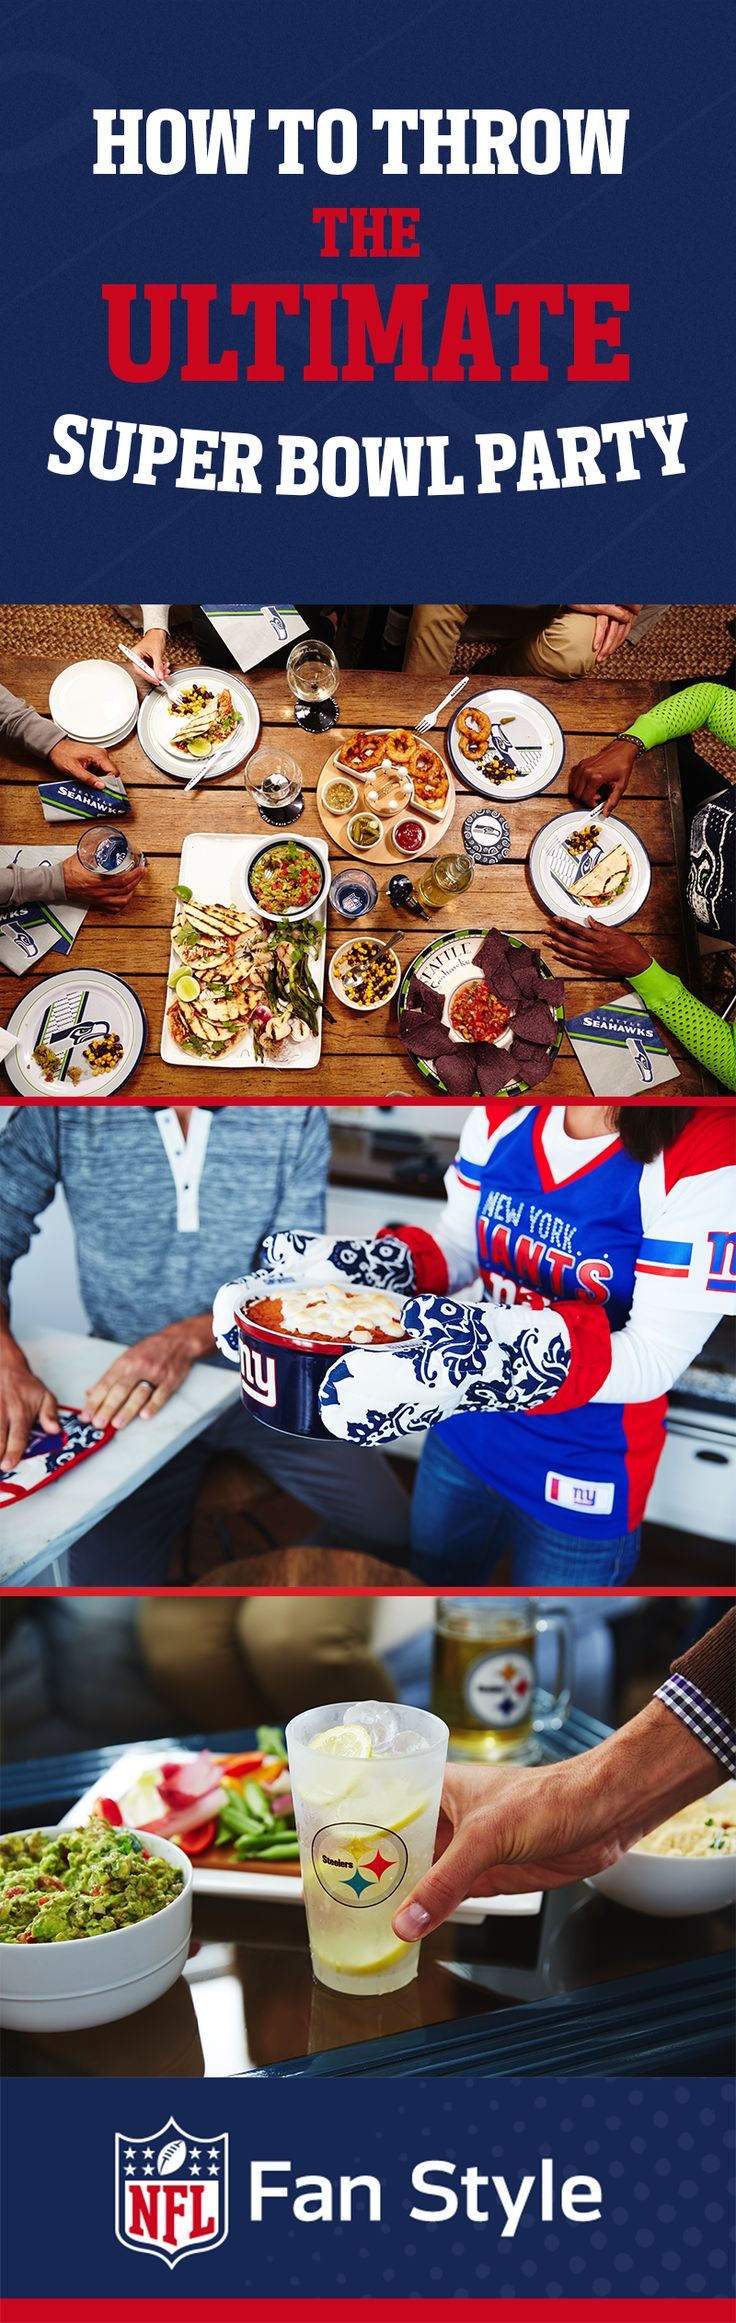 How can you throw the ultimate Super Bowl 50 party? We have a few ideas: food, fashion, and fandom.